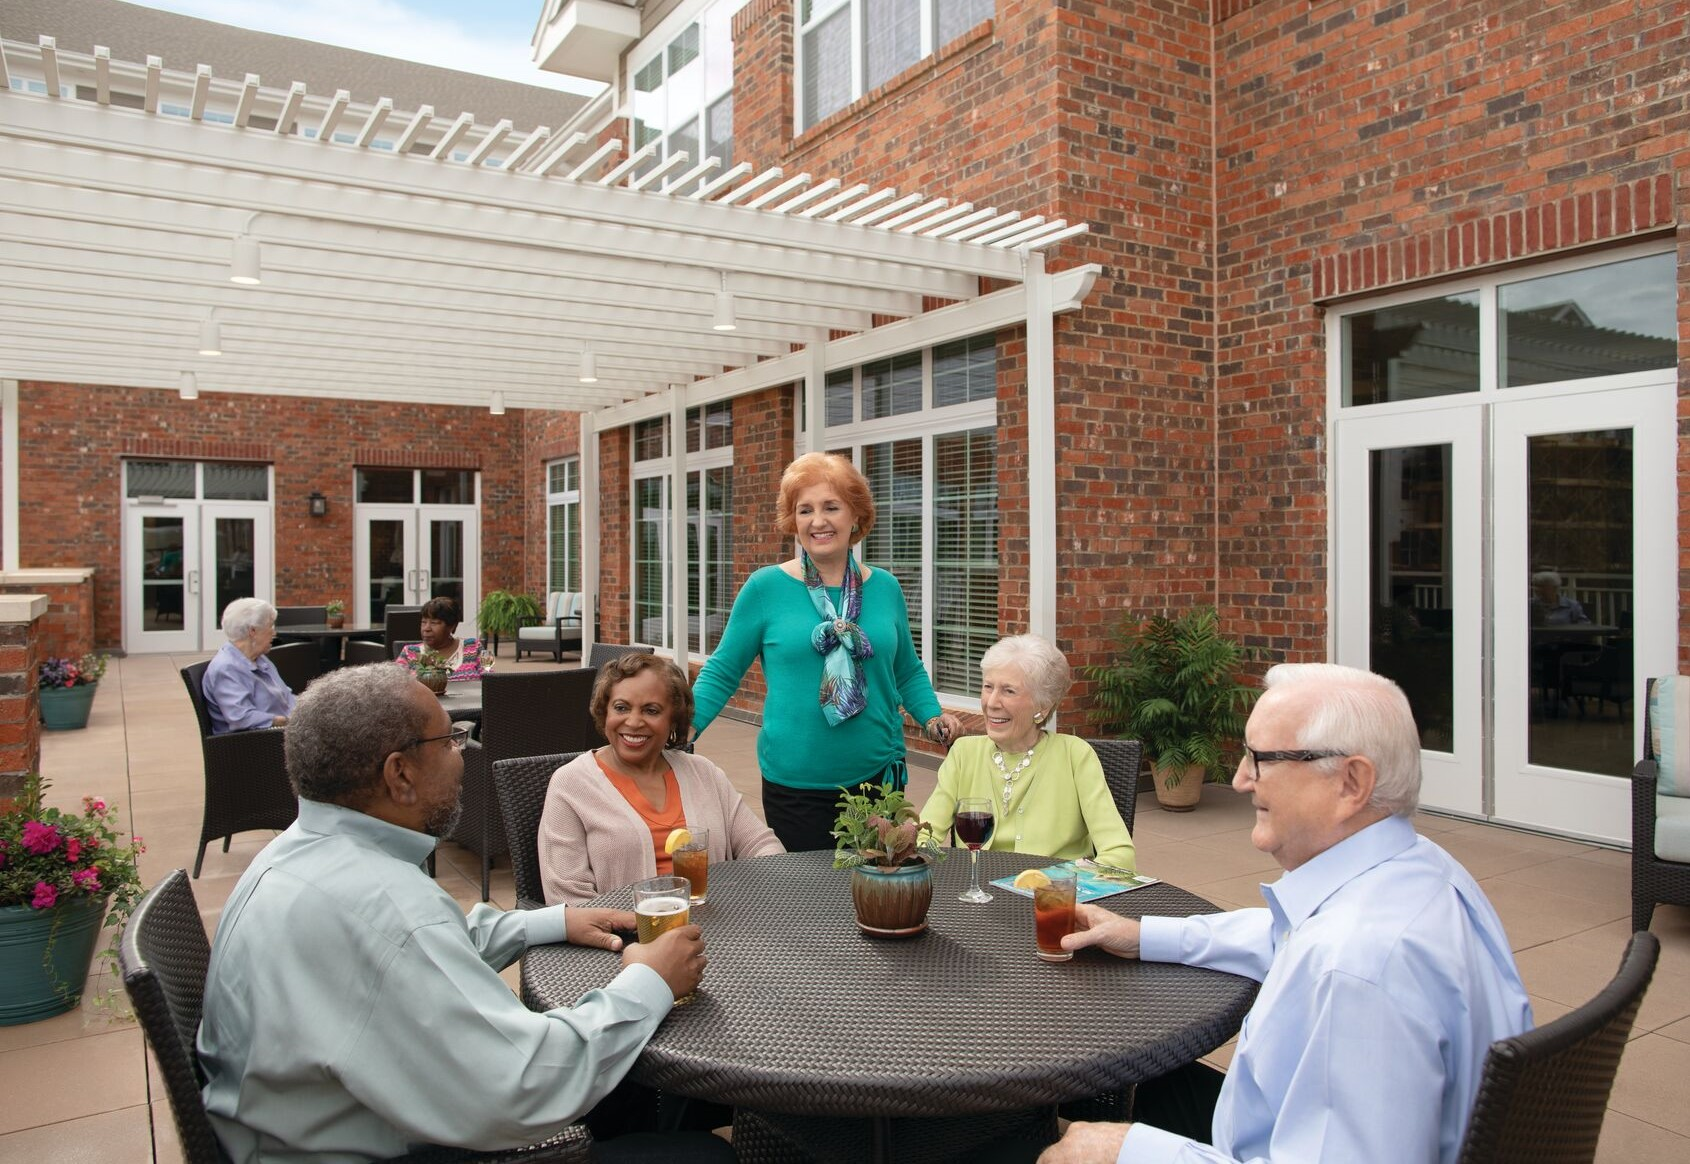 Residents of Windsor Run enjoy a relaxing afternoon outside on the patio at the Erickson Living retirement community.